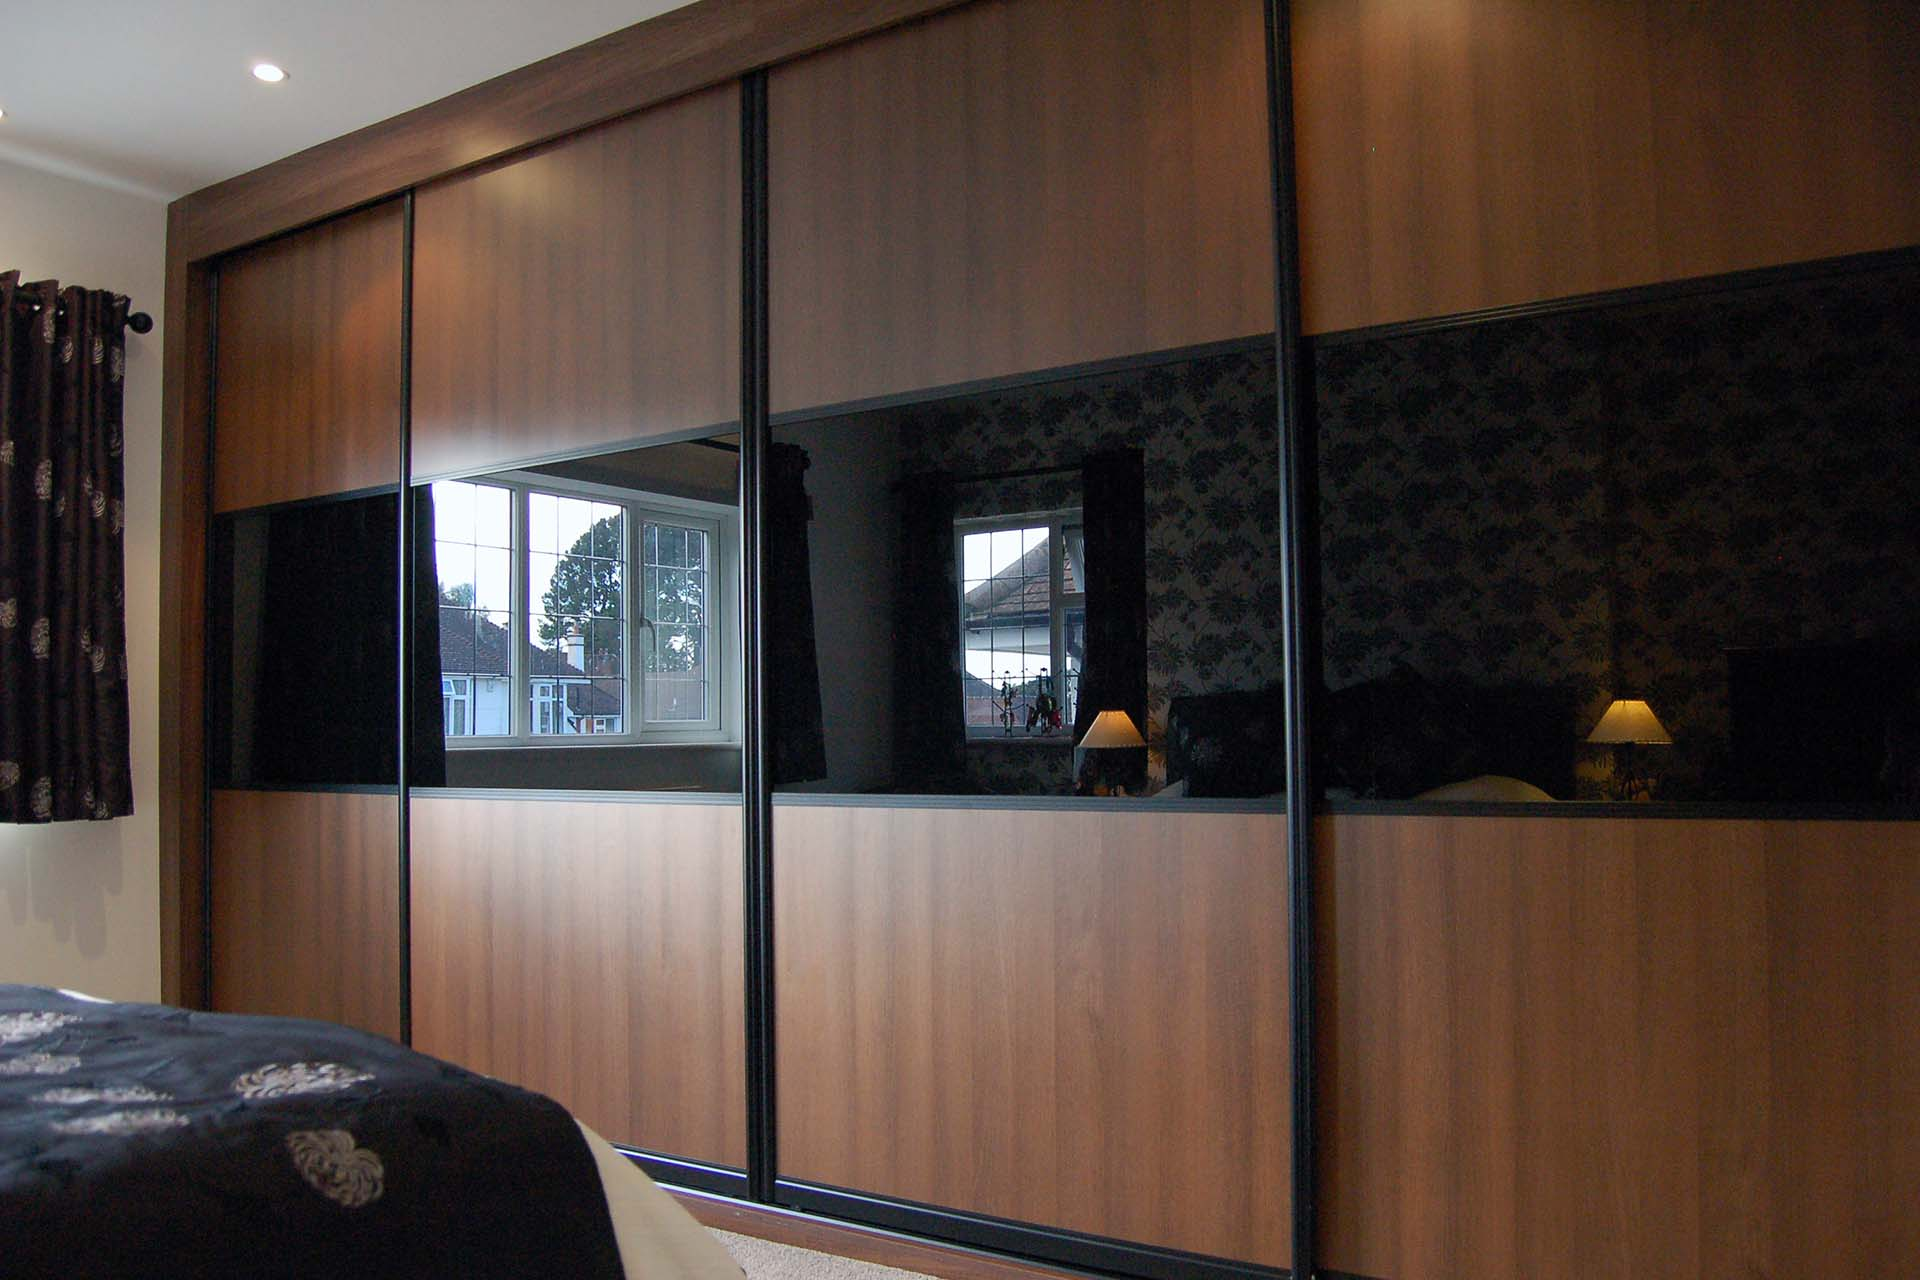 Dark wood finish combined with black glass with split bars sliding doors